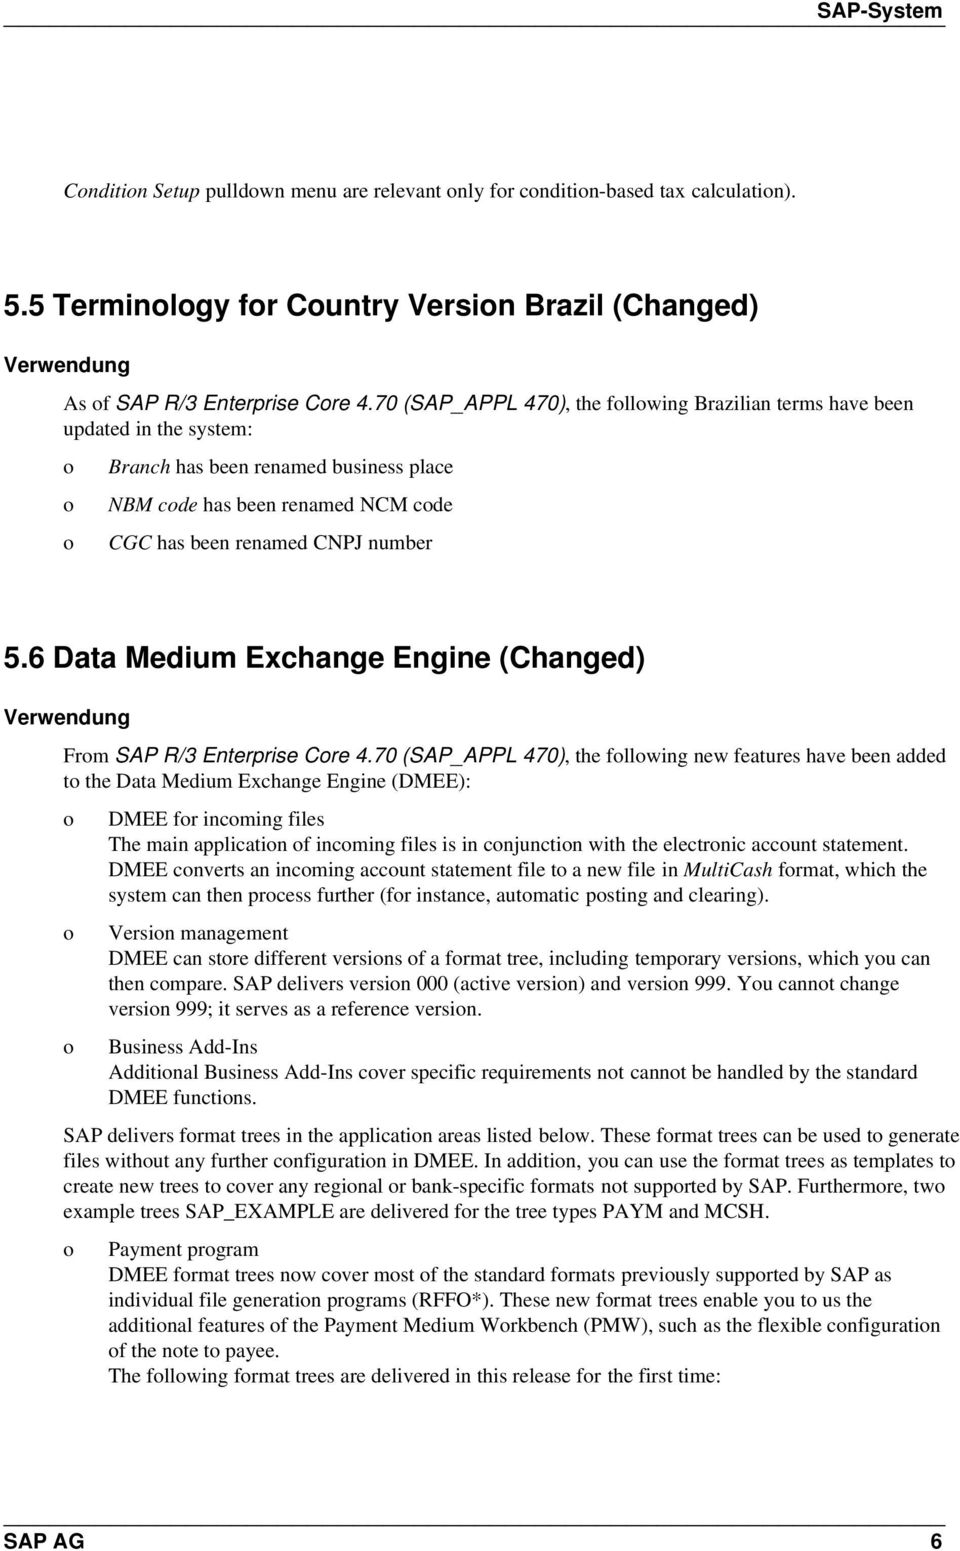 6 Data Medium Exchange Engine (Changed) Frm SAP R/3 Enterprise Cre 4.